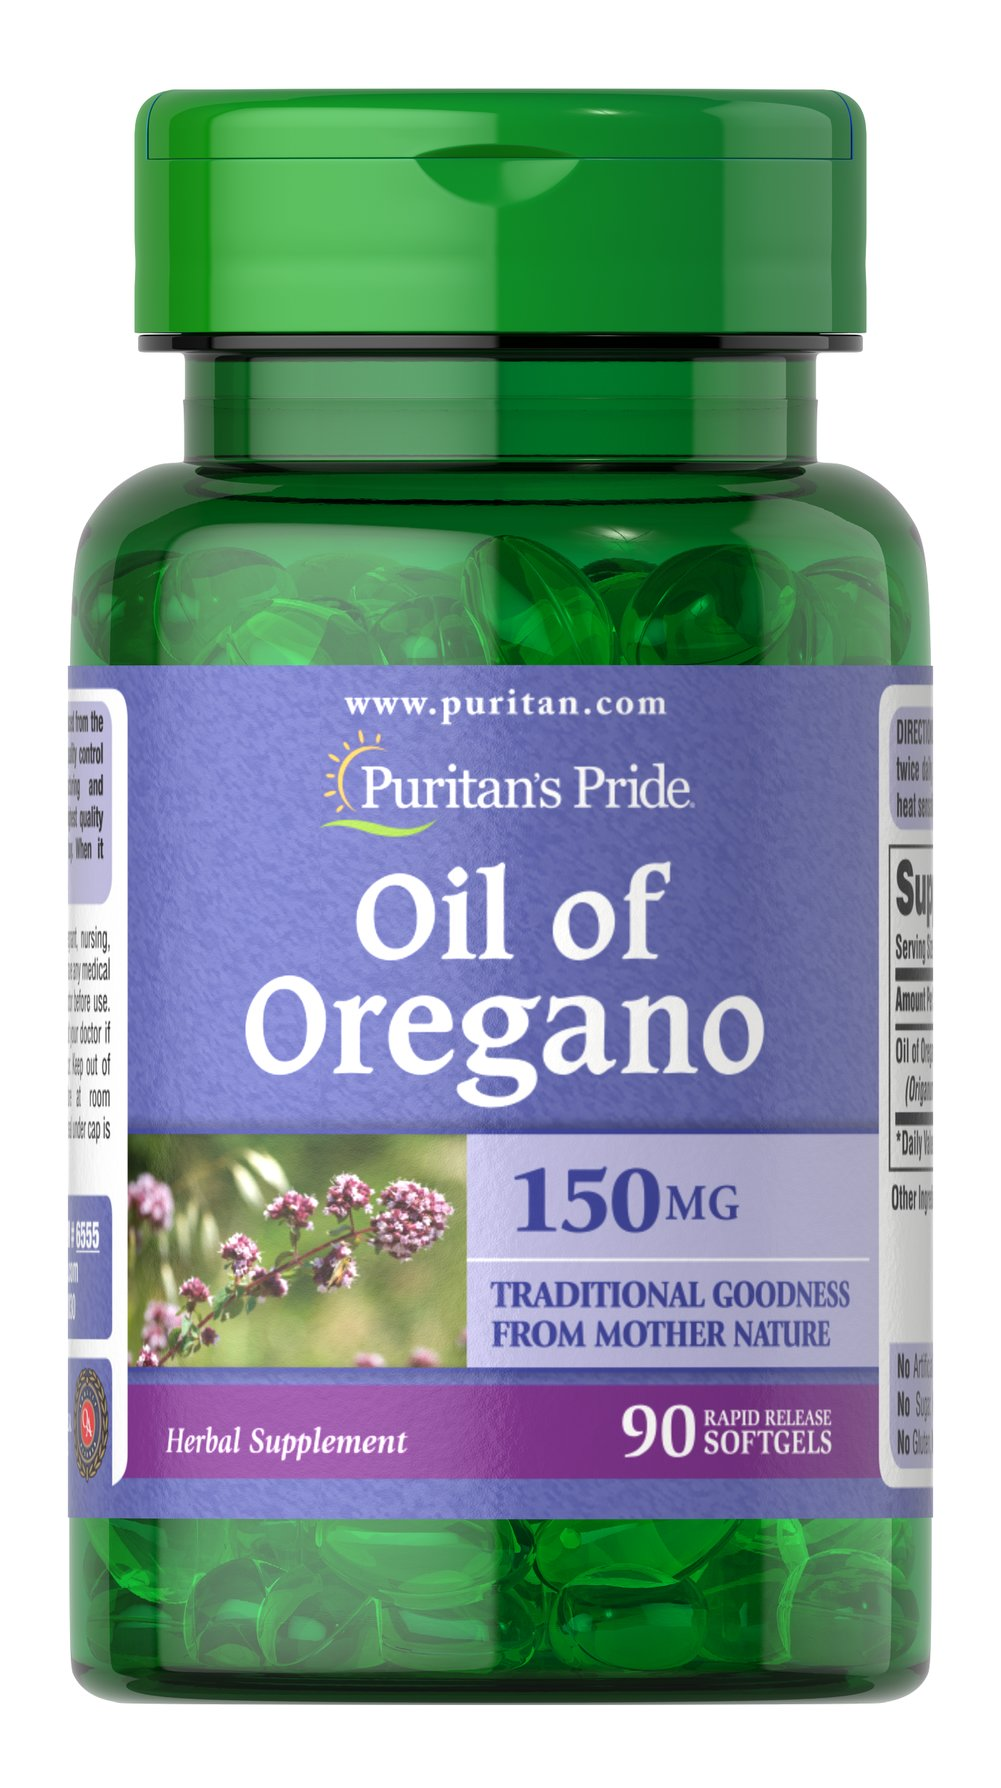 "Oil of Oregano Extract 1500 mg <p>Oil of Oregano equivalent to 1500 mg fresh oregano</p><p>Oil of Oregano has been held in high regard for its holistic qualities. It contains a number of valuable constituents and includes naturally occurring antioxidant phytochemicals.** Our high-quality softgels make it easy to obtain ""traditional goodness from Mother Nature."" </p>   90 Softgels 1500 mg $8.99"